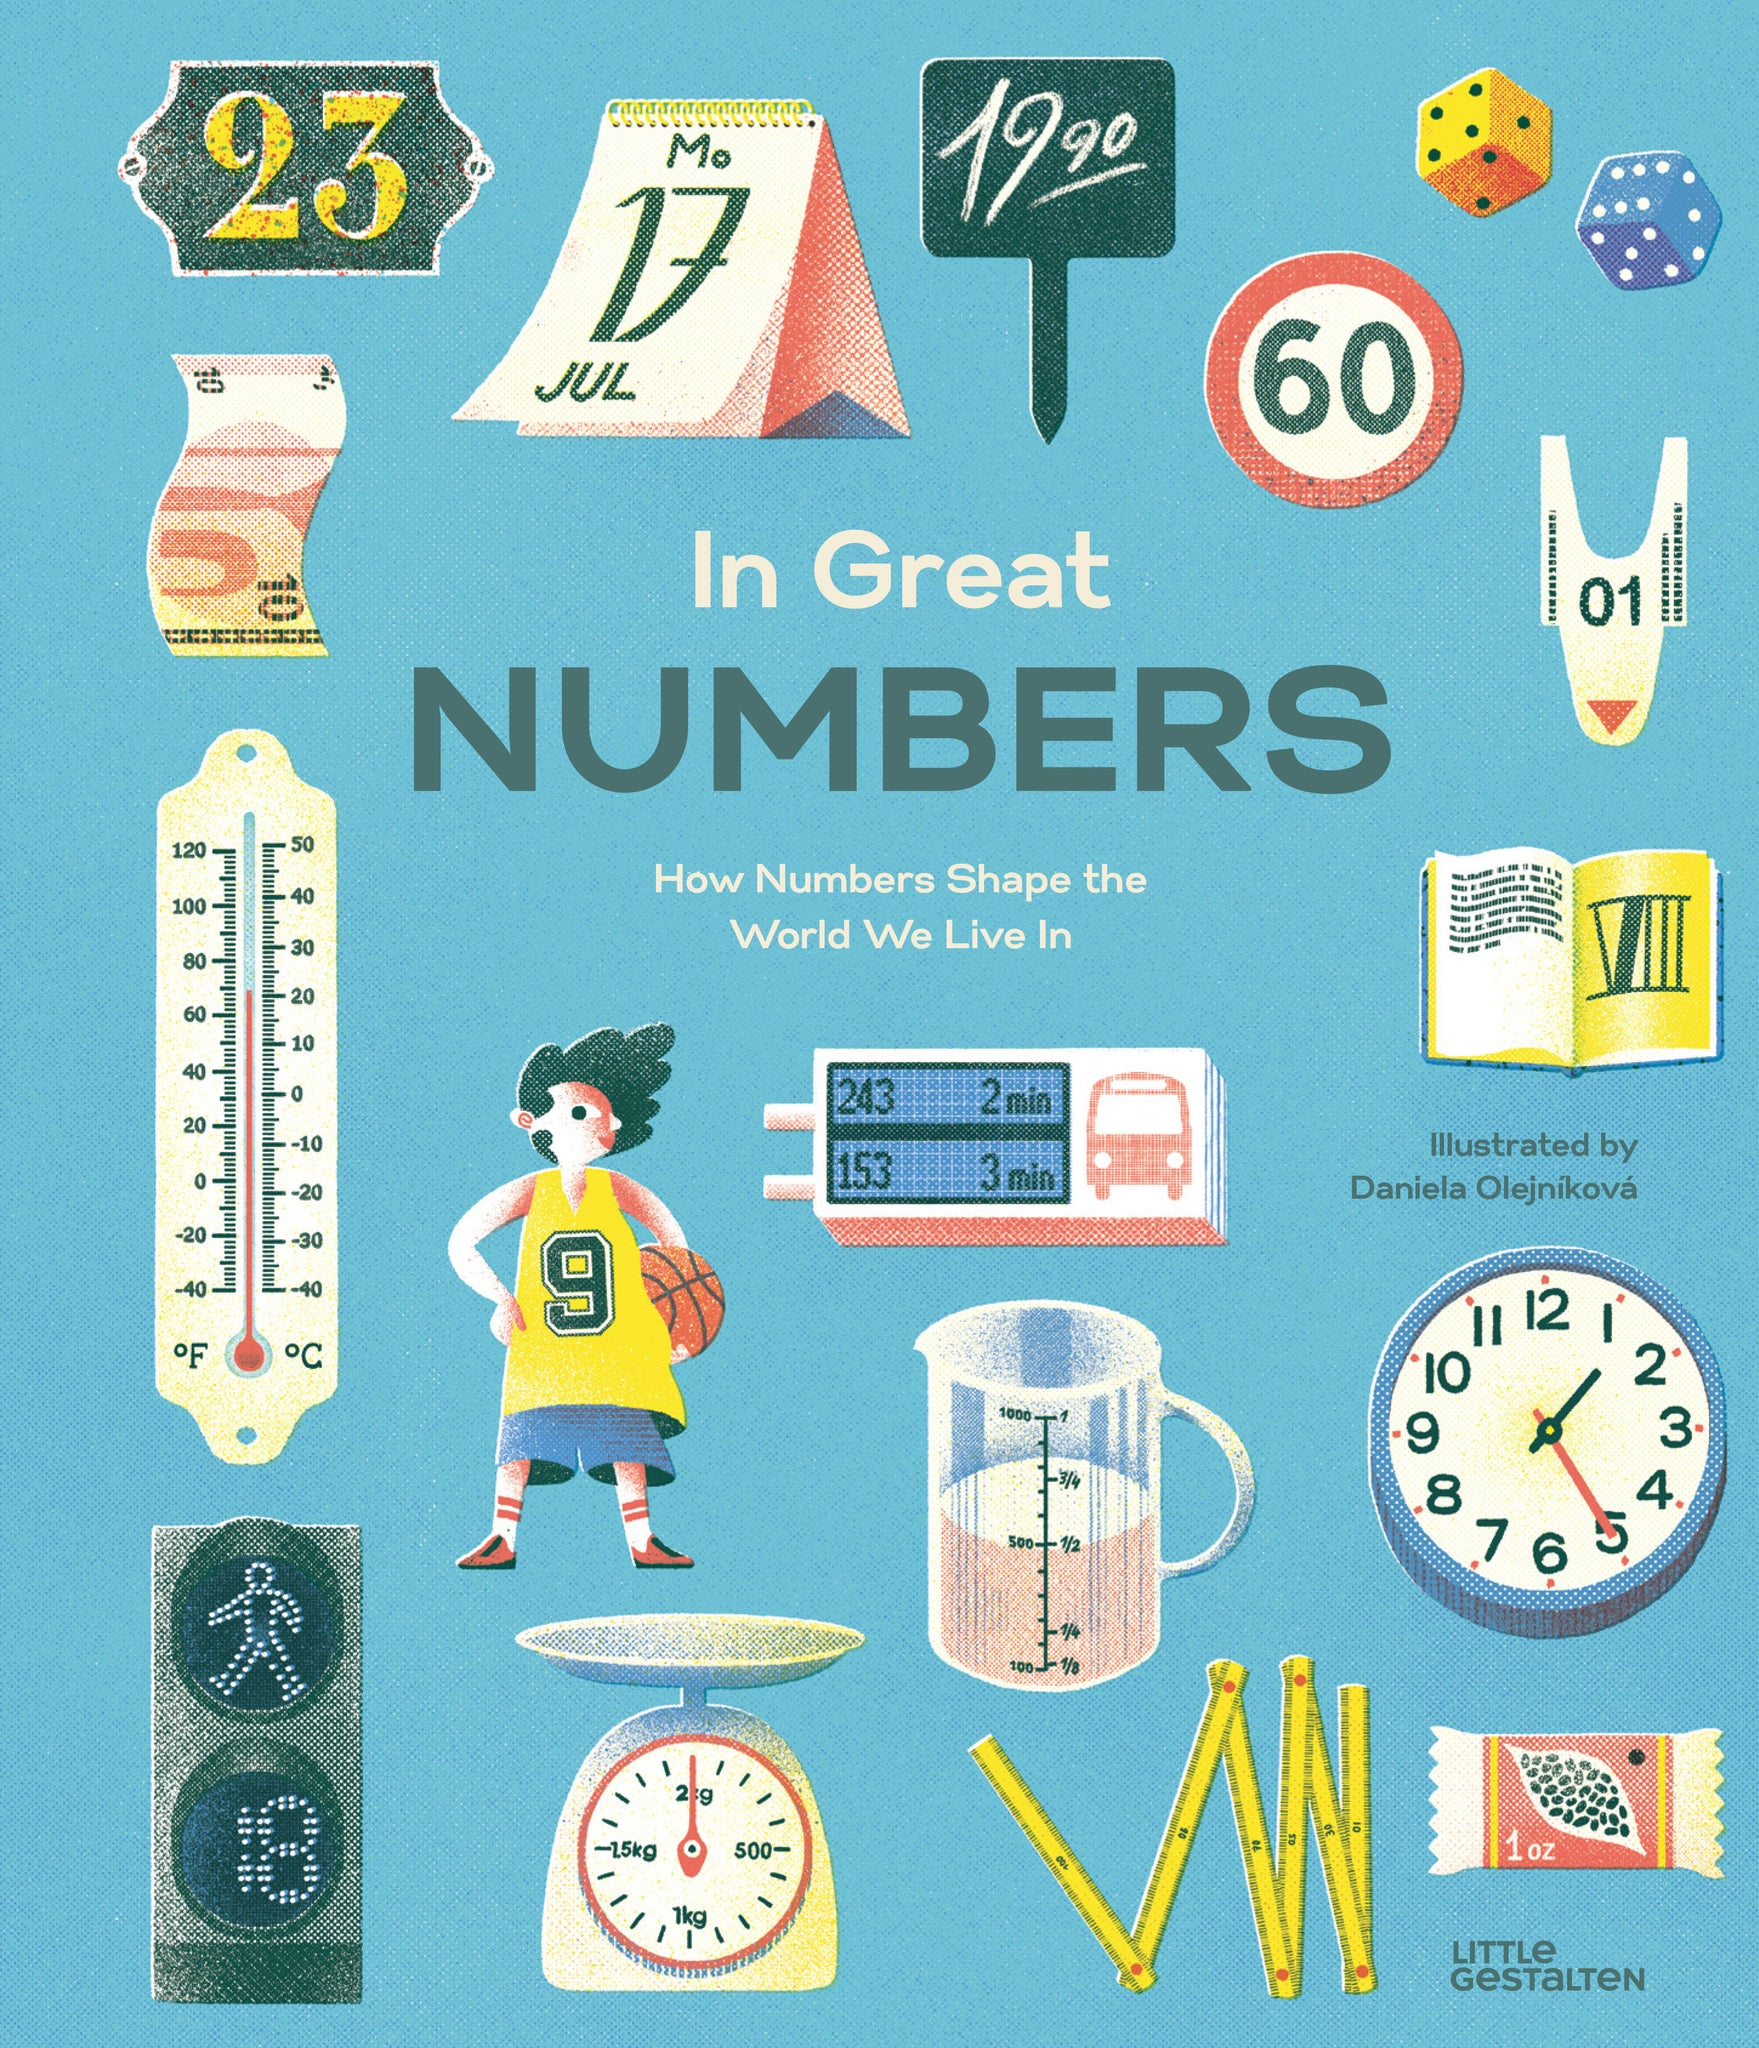 In Great Numbers: How Numbers Shape the World We Live In